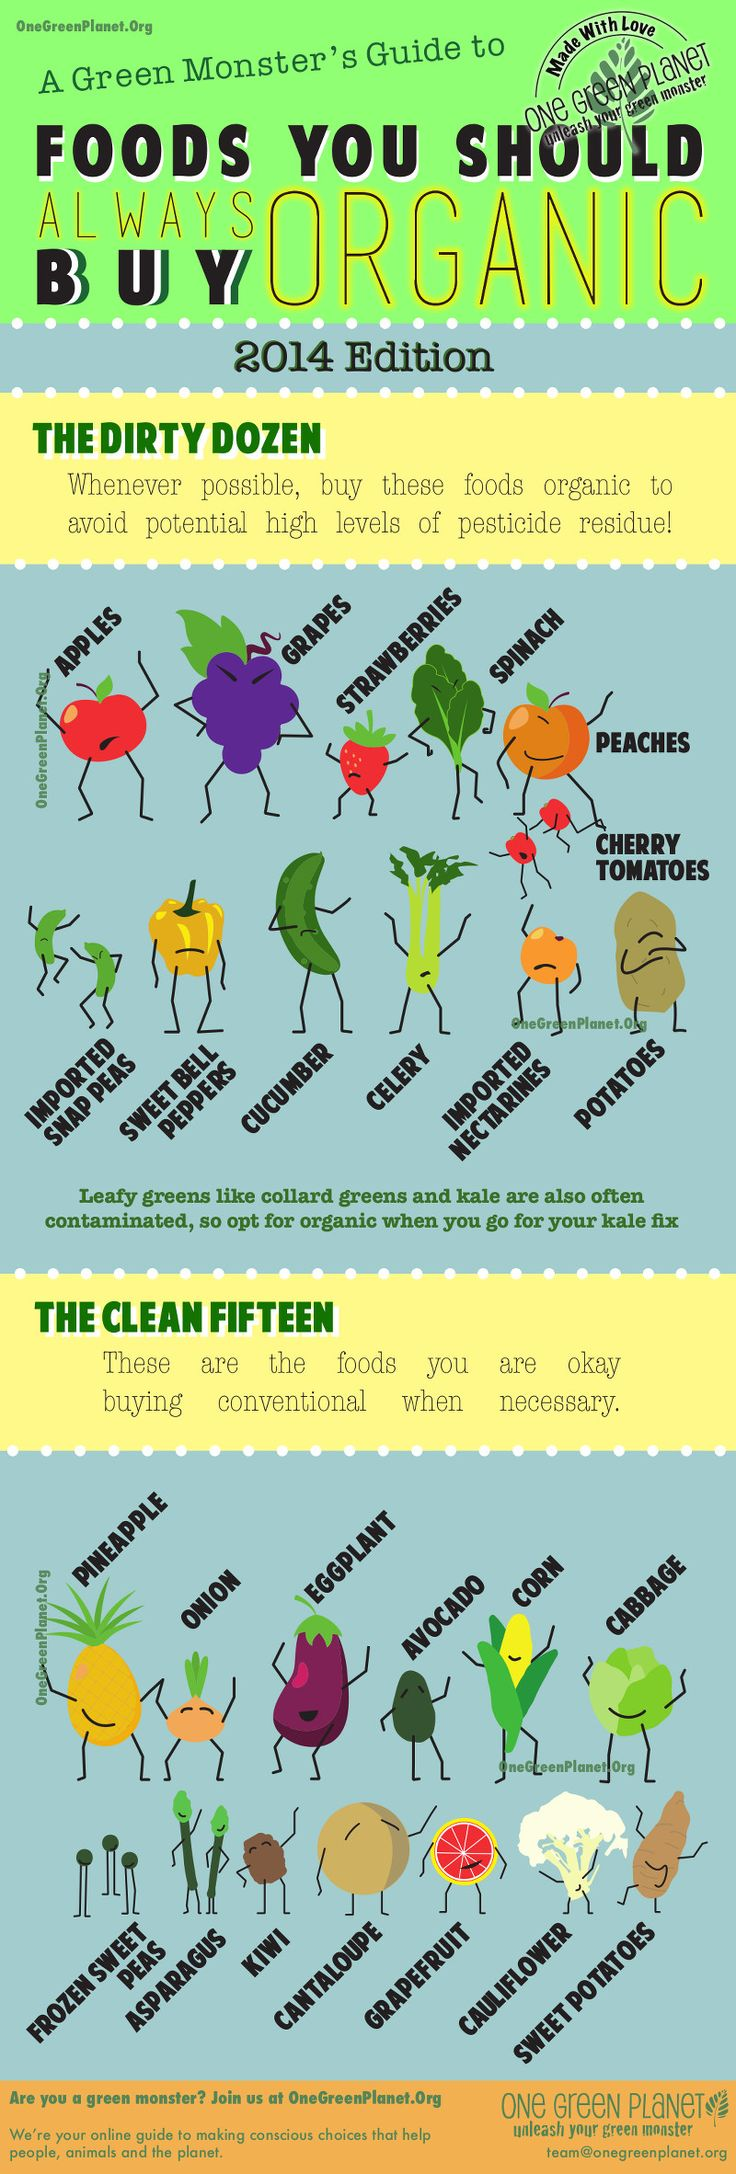 Foods You Should Buy Organic in 2014 by onegreen planet: Whether you always opt for organic or buy certain kinds of conventional produce, you have the right to know about the levels of pesticides used to grow these foods, and you also have a right to know the risks involved.